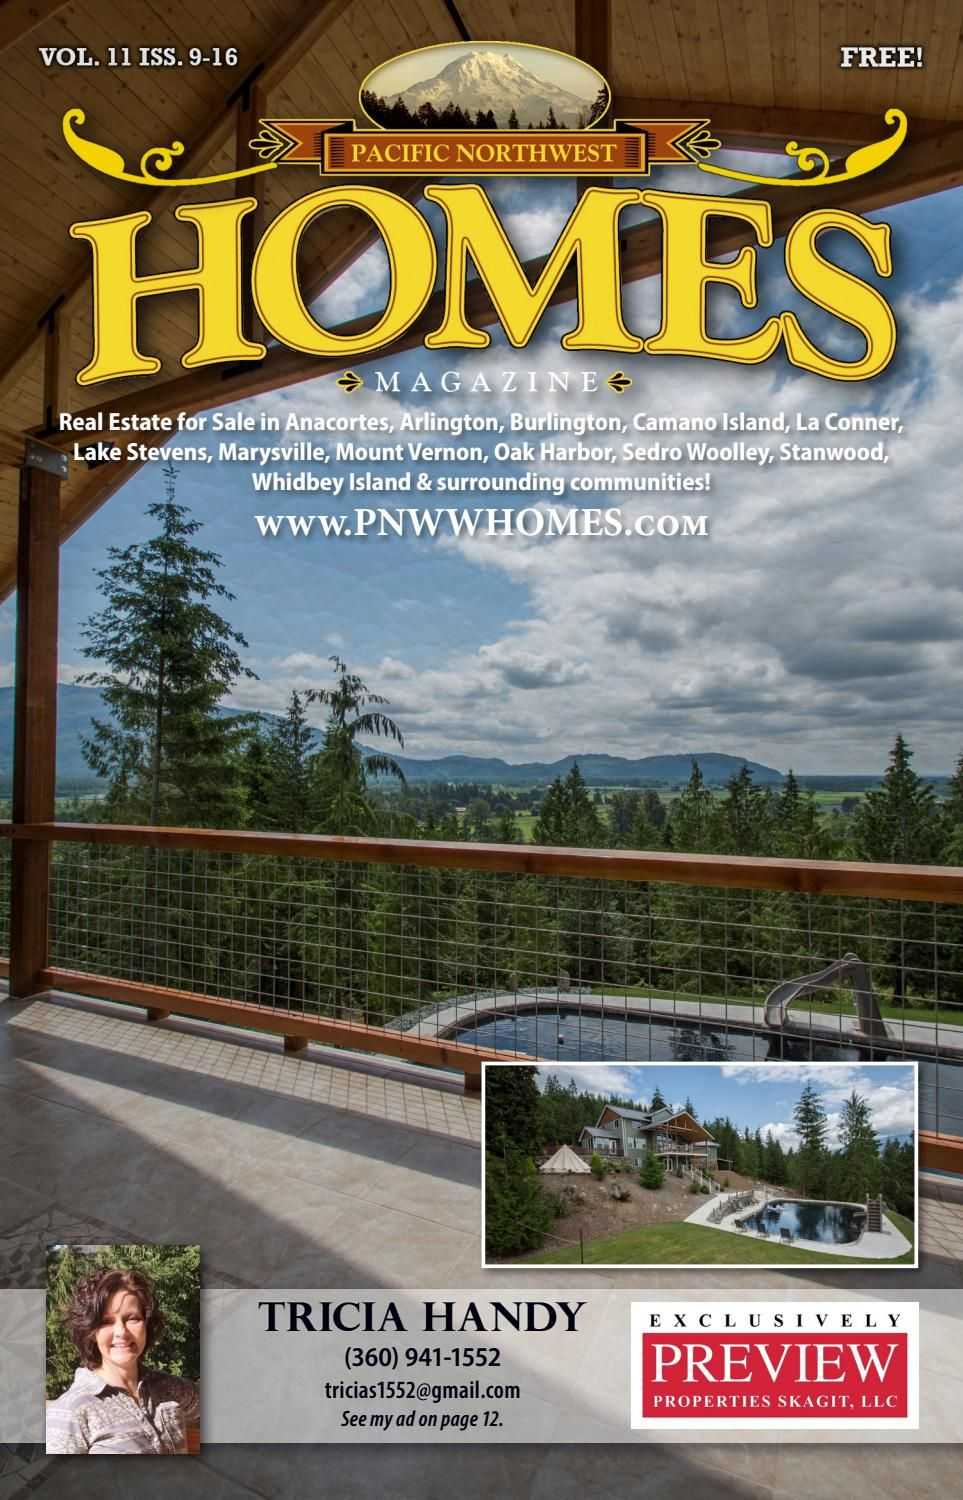 Pacific Nw Homes Is A Locally Owned Real Estate Magazine Featuring Land Homes Commercial Properties For Sale In Skagit Isla Camano Island Marysville Island